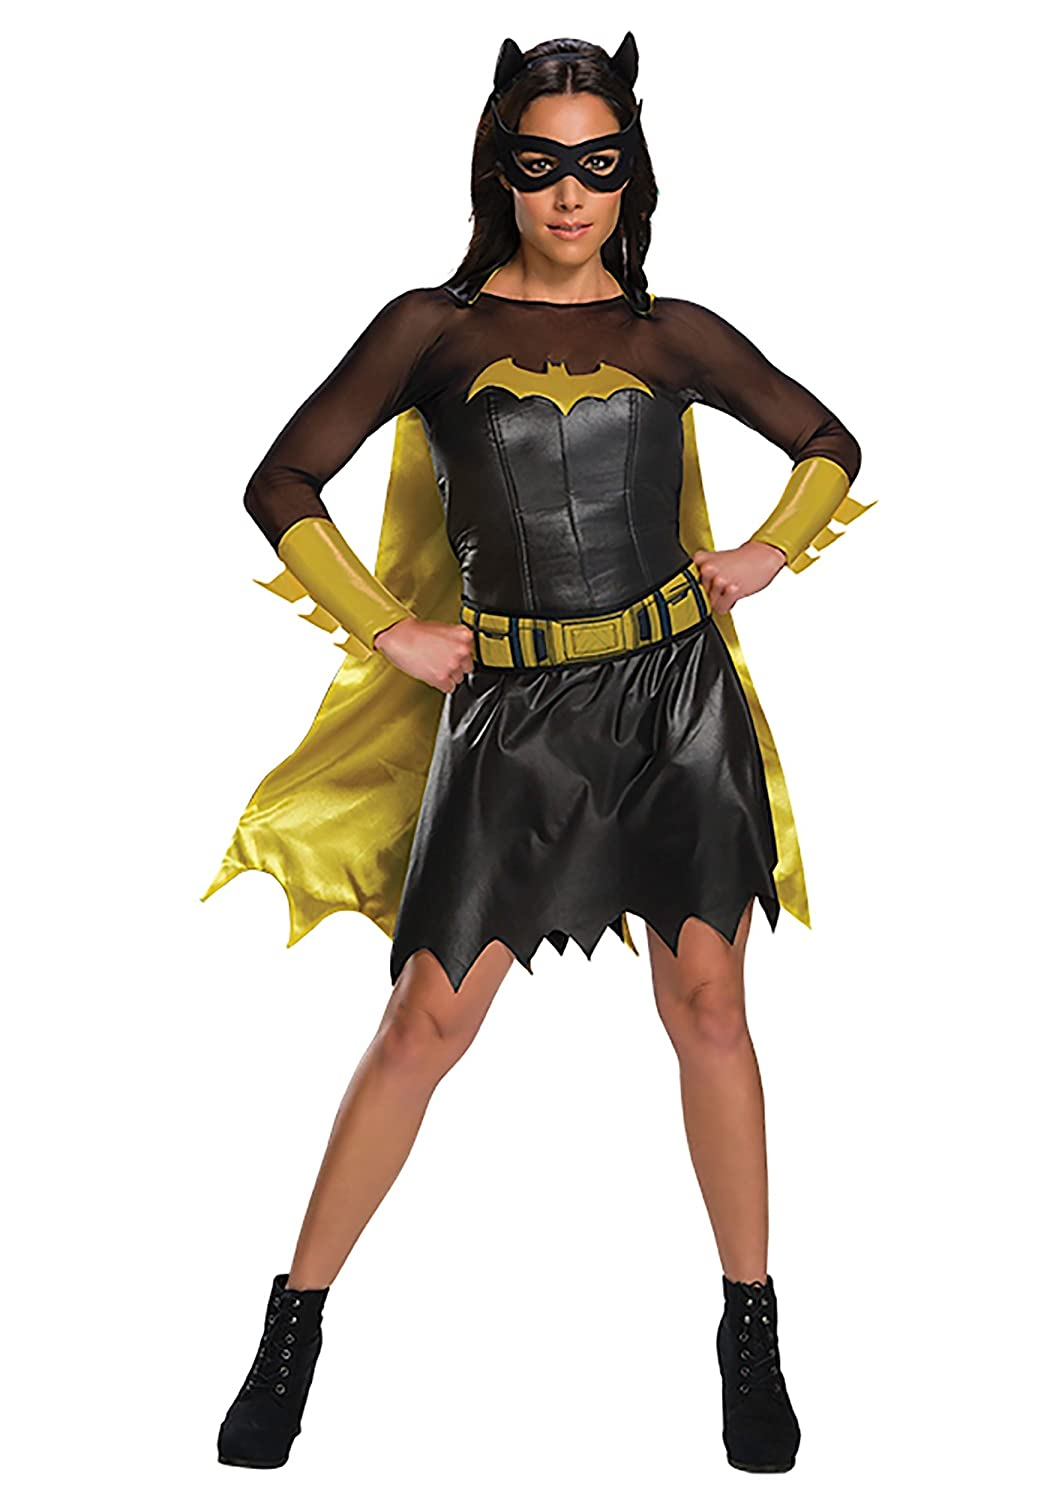 DC Deluxe Women's Batgirl Fancy dress costume Medium